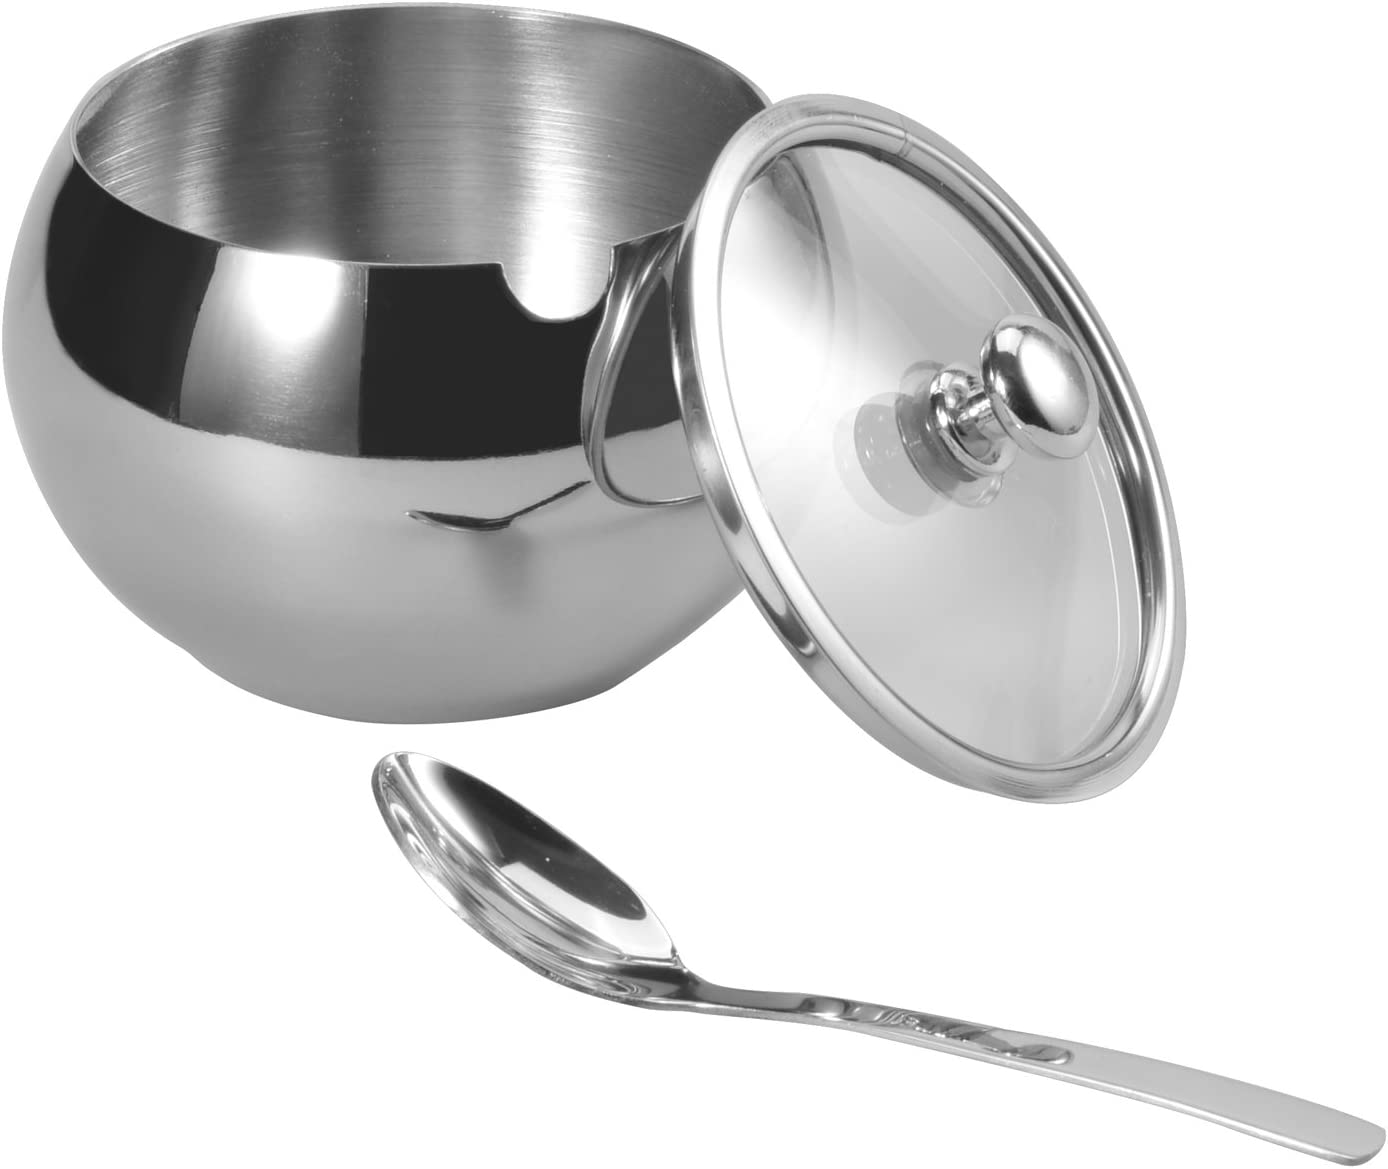 HardNok Stainless Steel Sugar Bowl with Glass Lid and Spoon,350 Milliliter